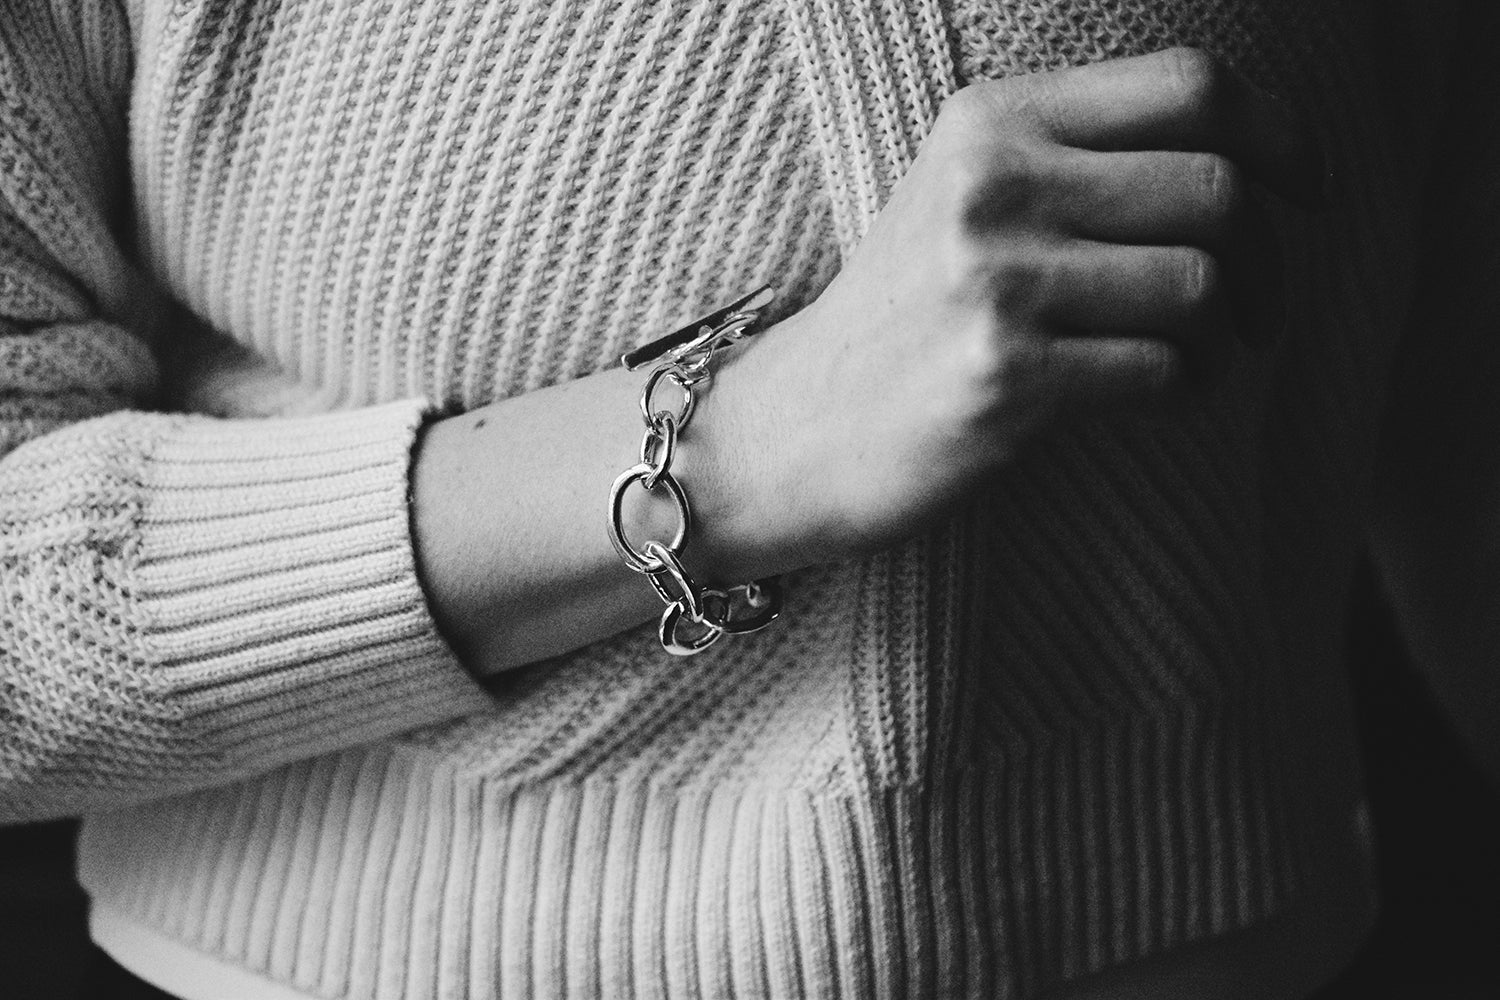 The Alana Bracelet on a model for scale. Image shows the organic, variable sterling silver links, as well as the statement toggle.